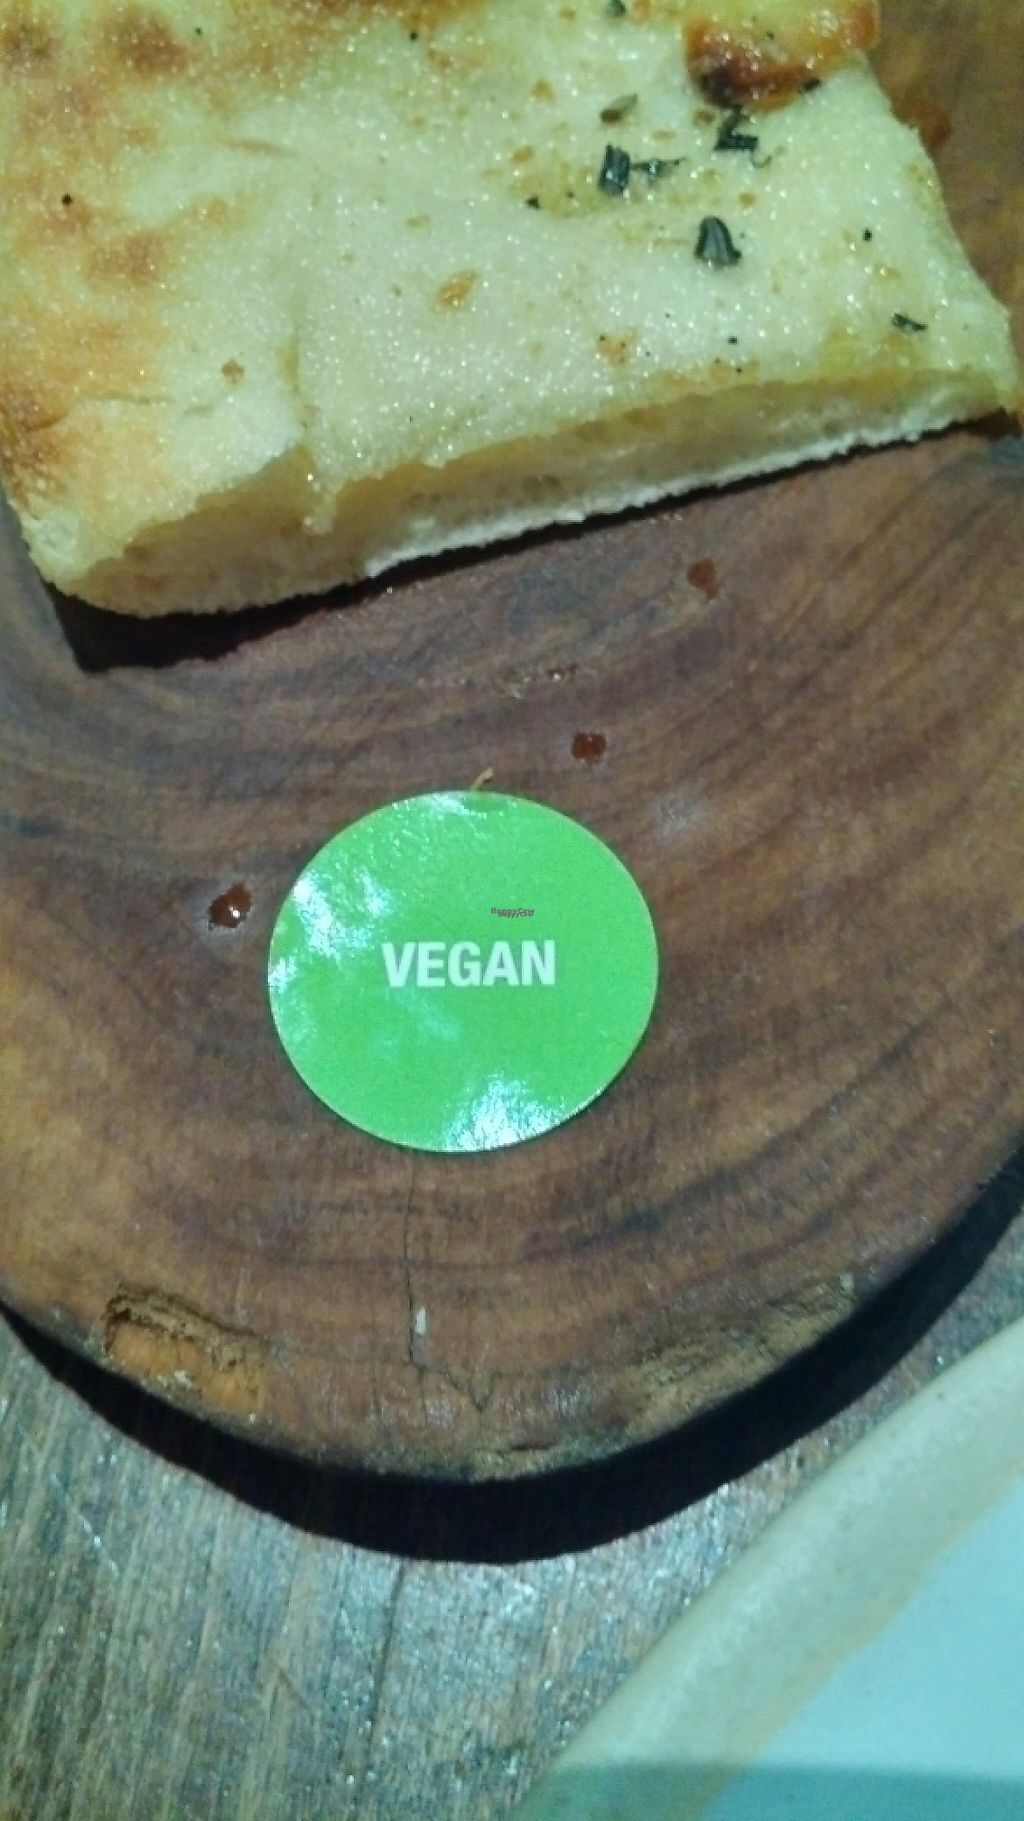 """Photo of Zizzi - Aberdeen  by <a href=""""/members/profile/VeganEdge"""">VeganEdge</a> <br/>vegan label for vegan items <br/> September 6, 2016  - <a href='/contact/abuse/image/77396/195962'>Report</a>"""